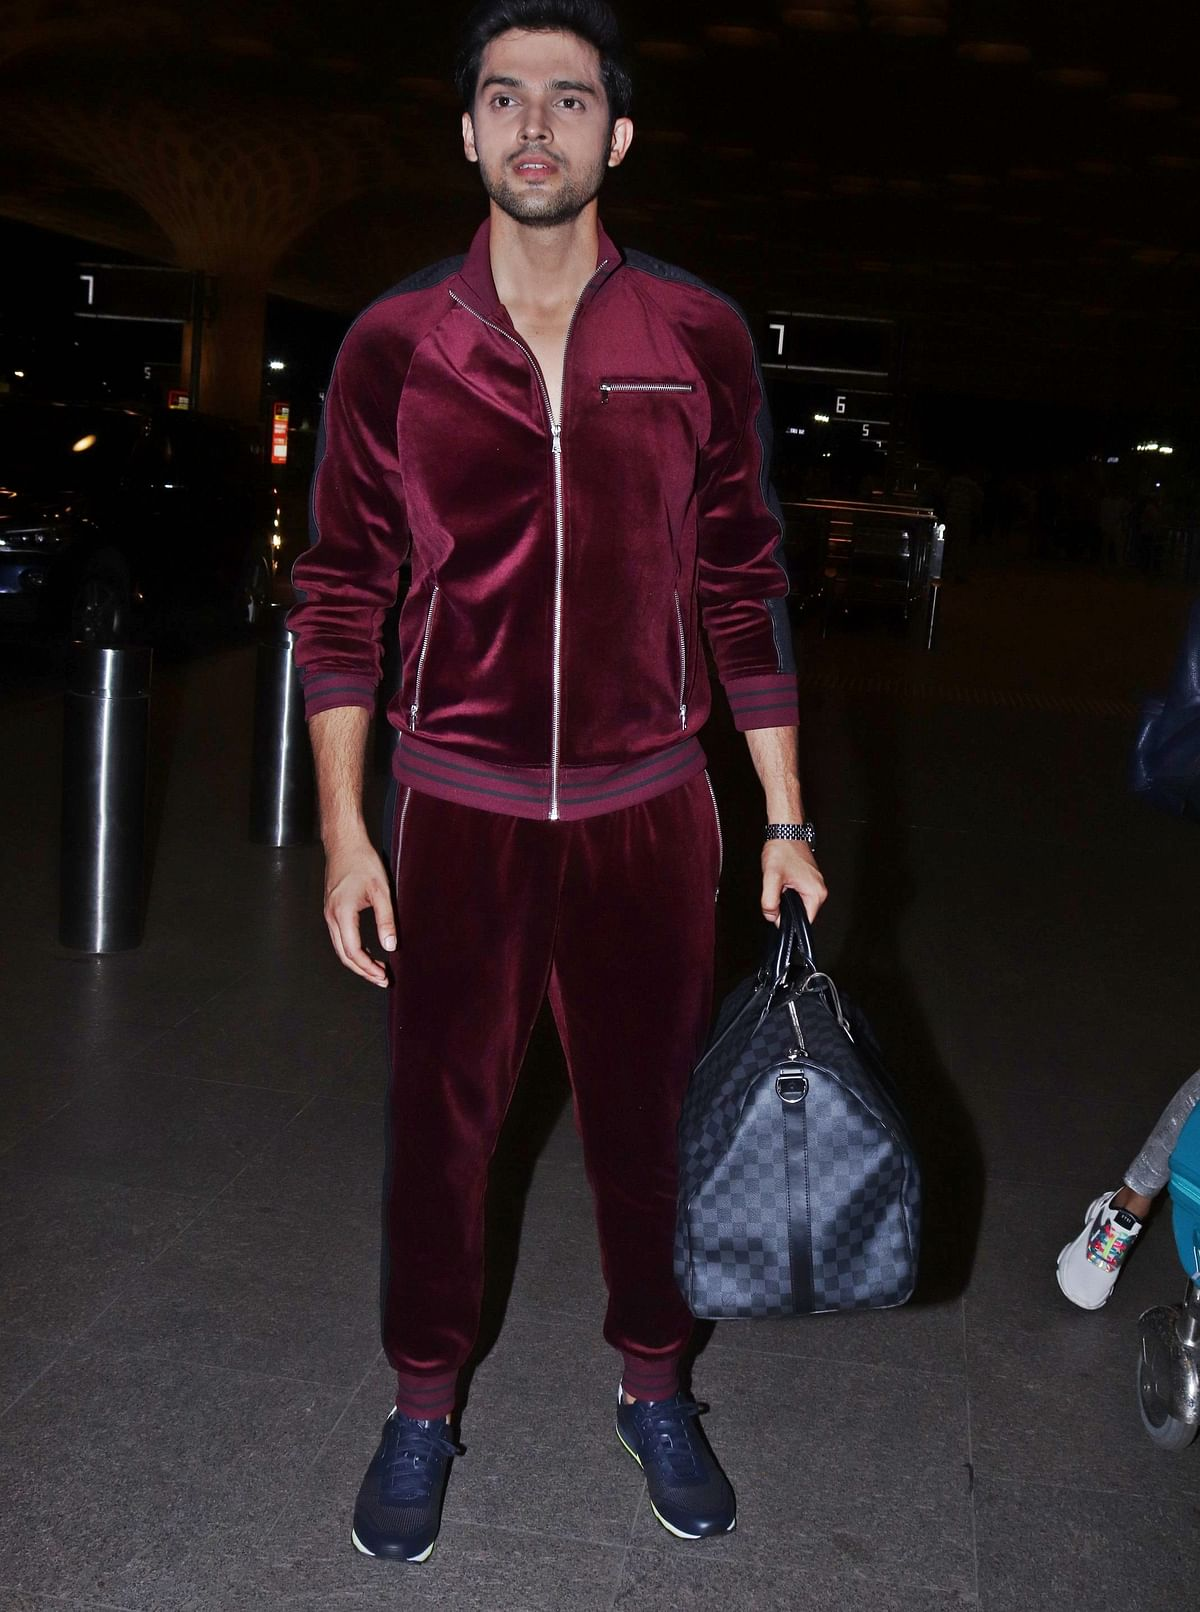 'Kasautii Zindgii Kay 2' star Parth Samthaan completes his airport look with Rs 1.27 Lakh Louis Vuitton bag